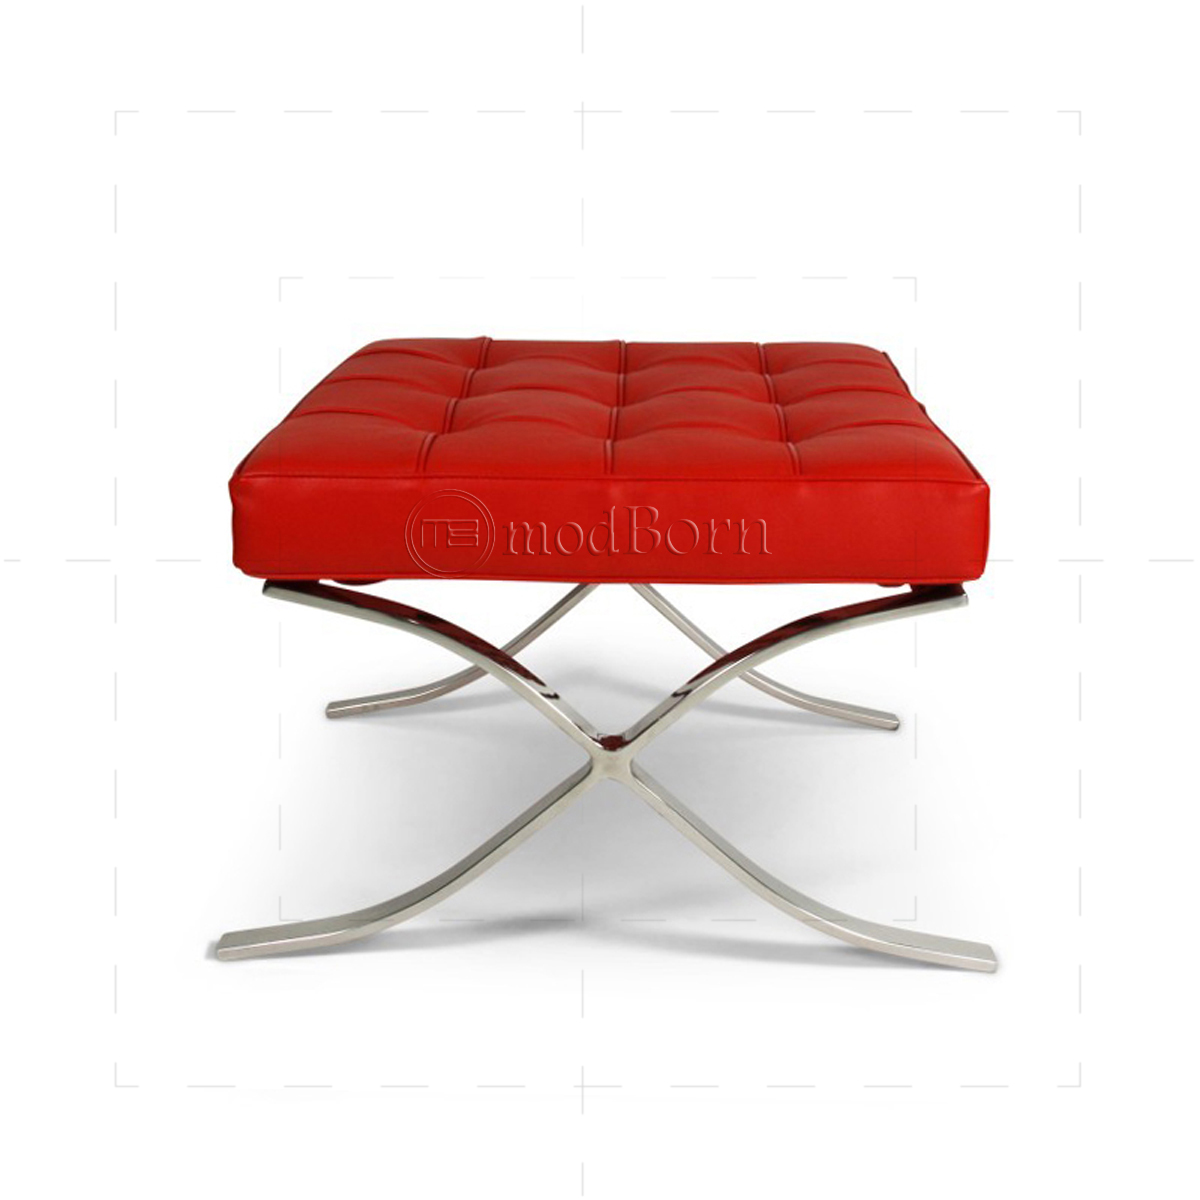 Ludwig Mies van der Rohe Barcelona Style Ottoman Red Leather